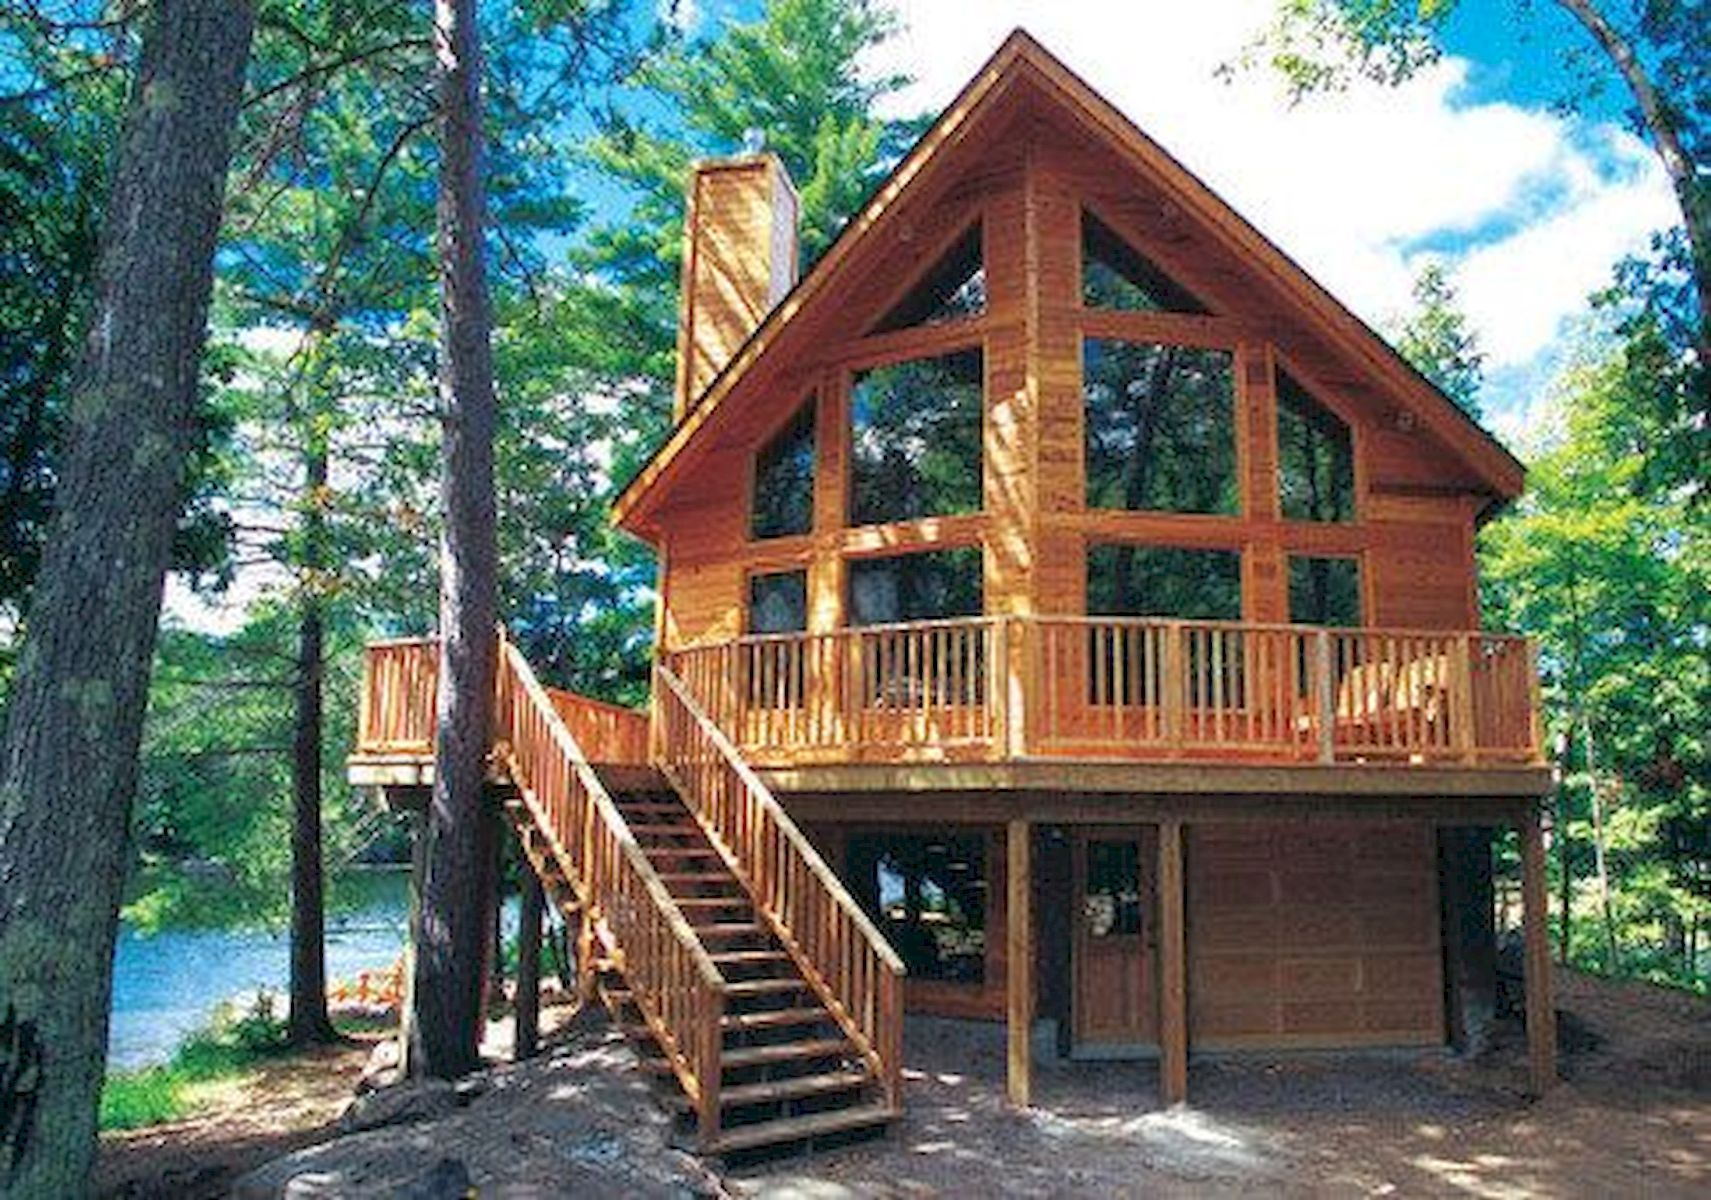 Awesome 75 Great Log Cabin Homes Plans Design Ideas Https Livingmarch Com 75 Great Log Cabin Homes Plans Design Linwood Homes Log Cabin Homes Log Cabin Plans